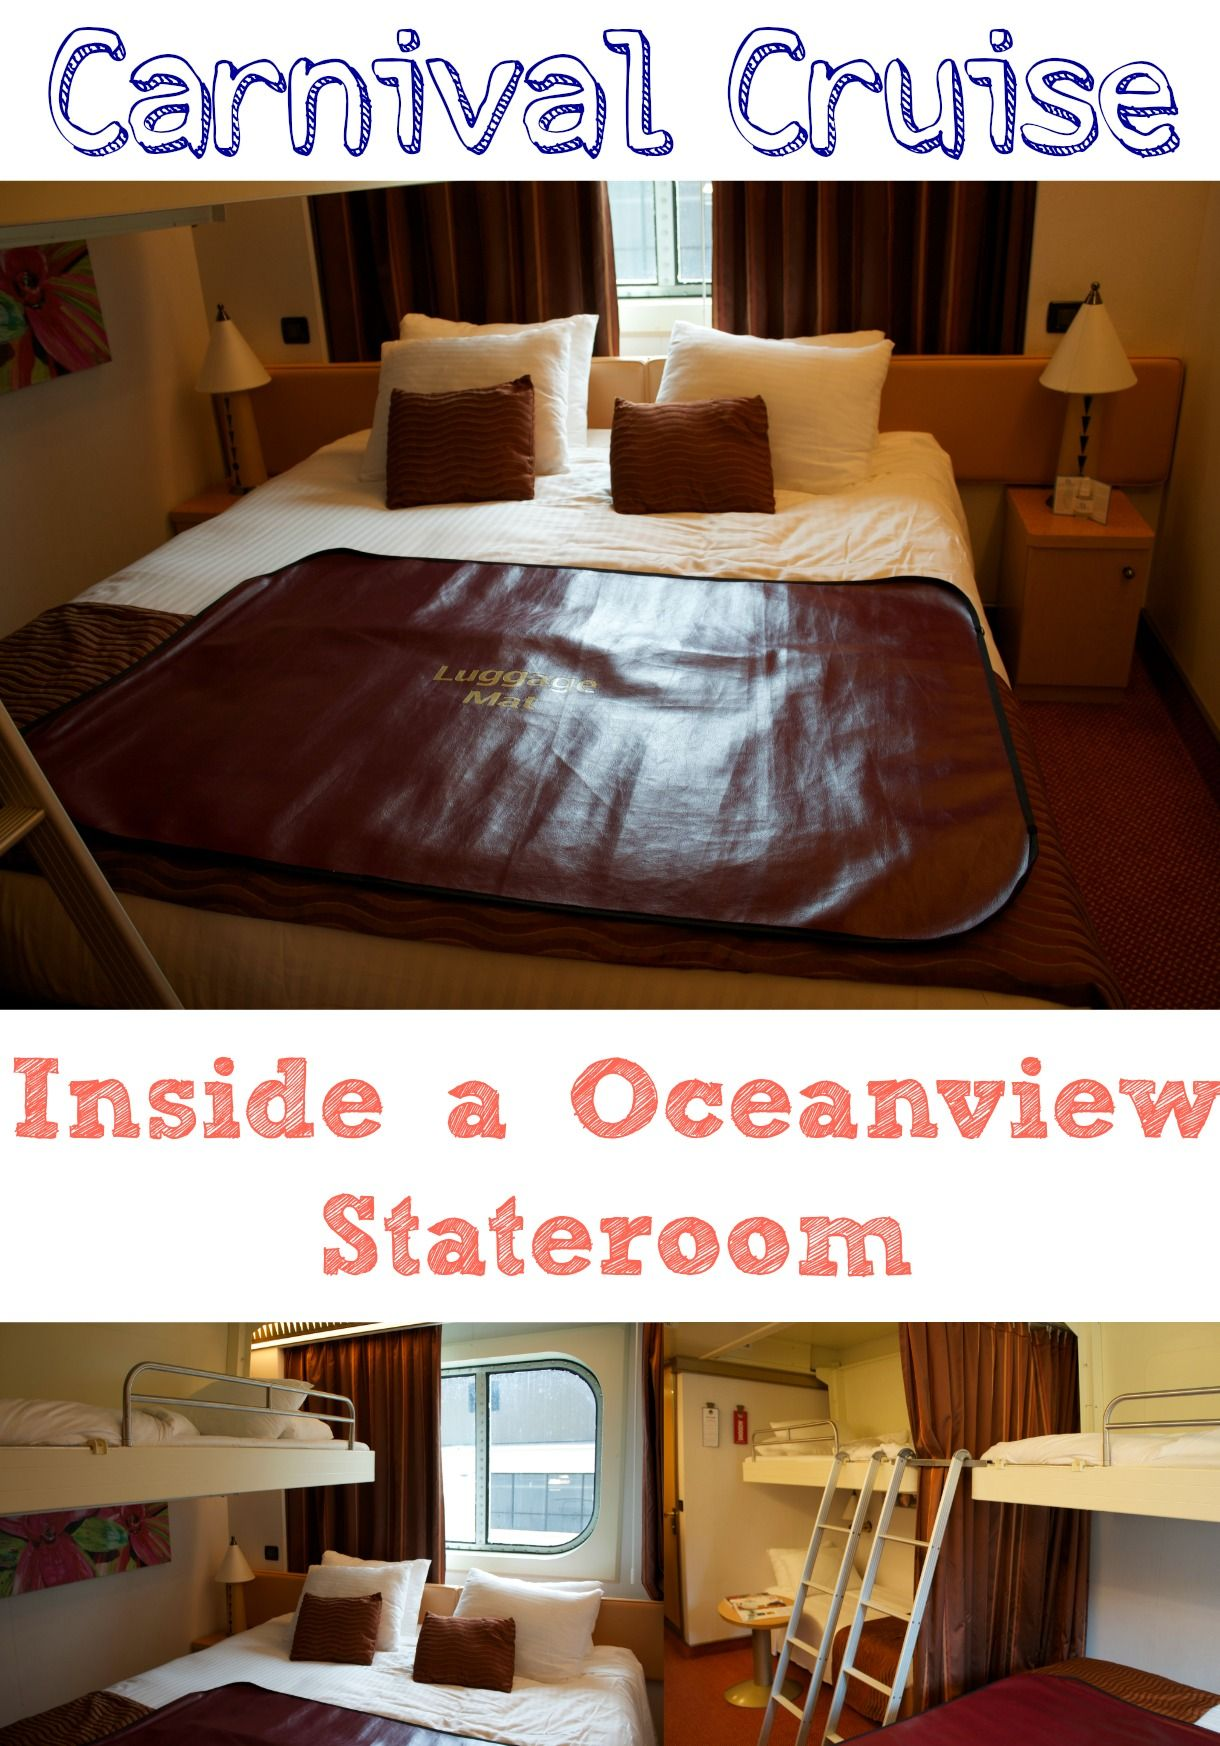 Carnival Cruise: Inside an Oceanview Stateroom aboard the Carnival Magic Cruise ship